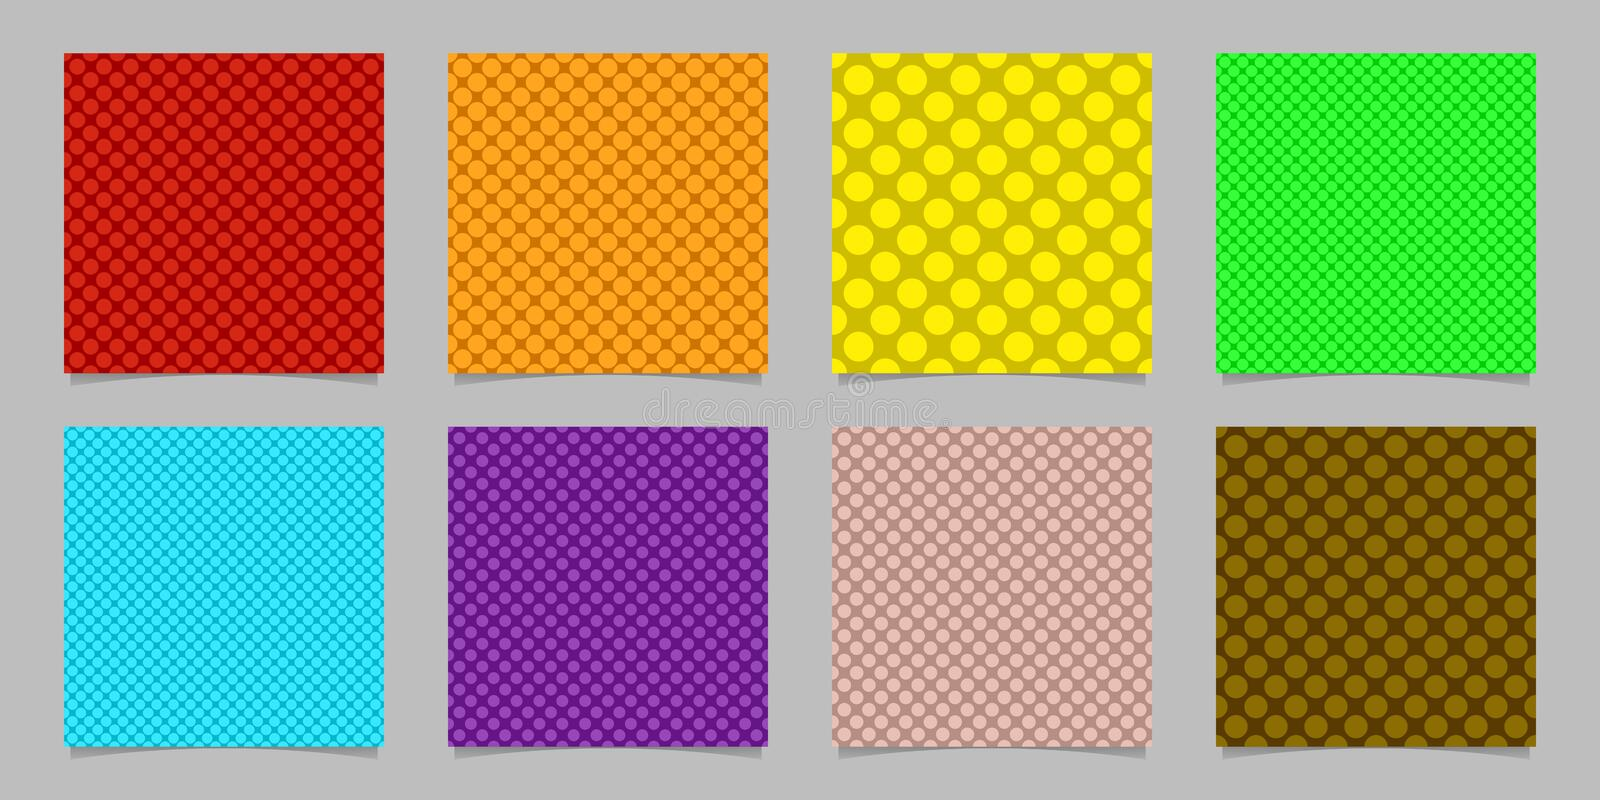 Simple seamless dot background pattern design set - squared vector graphics from colored circles stock illustration